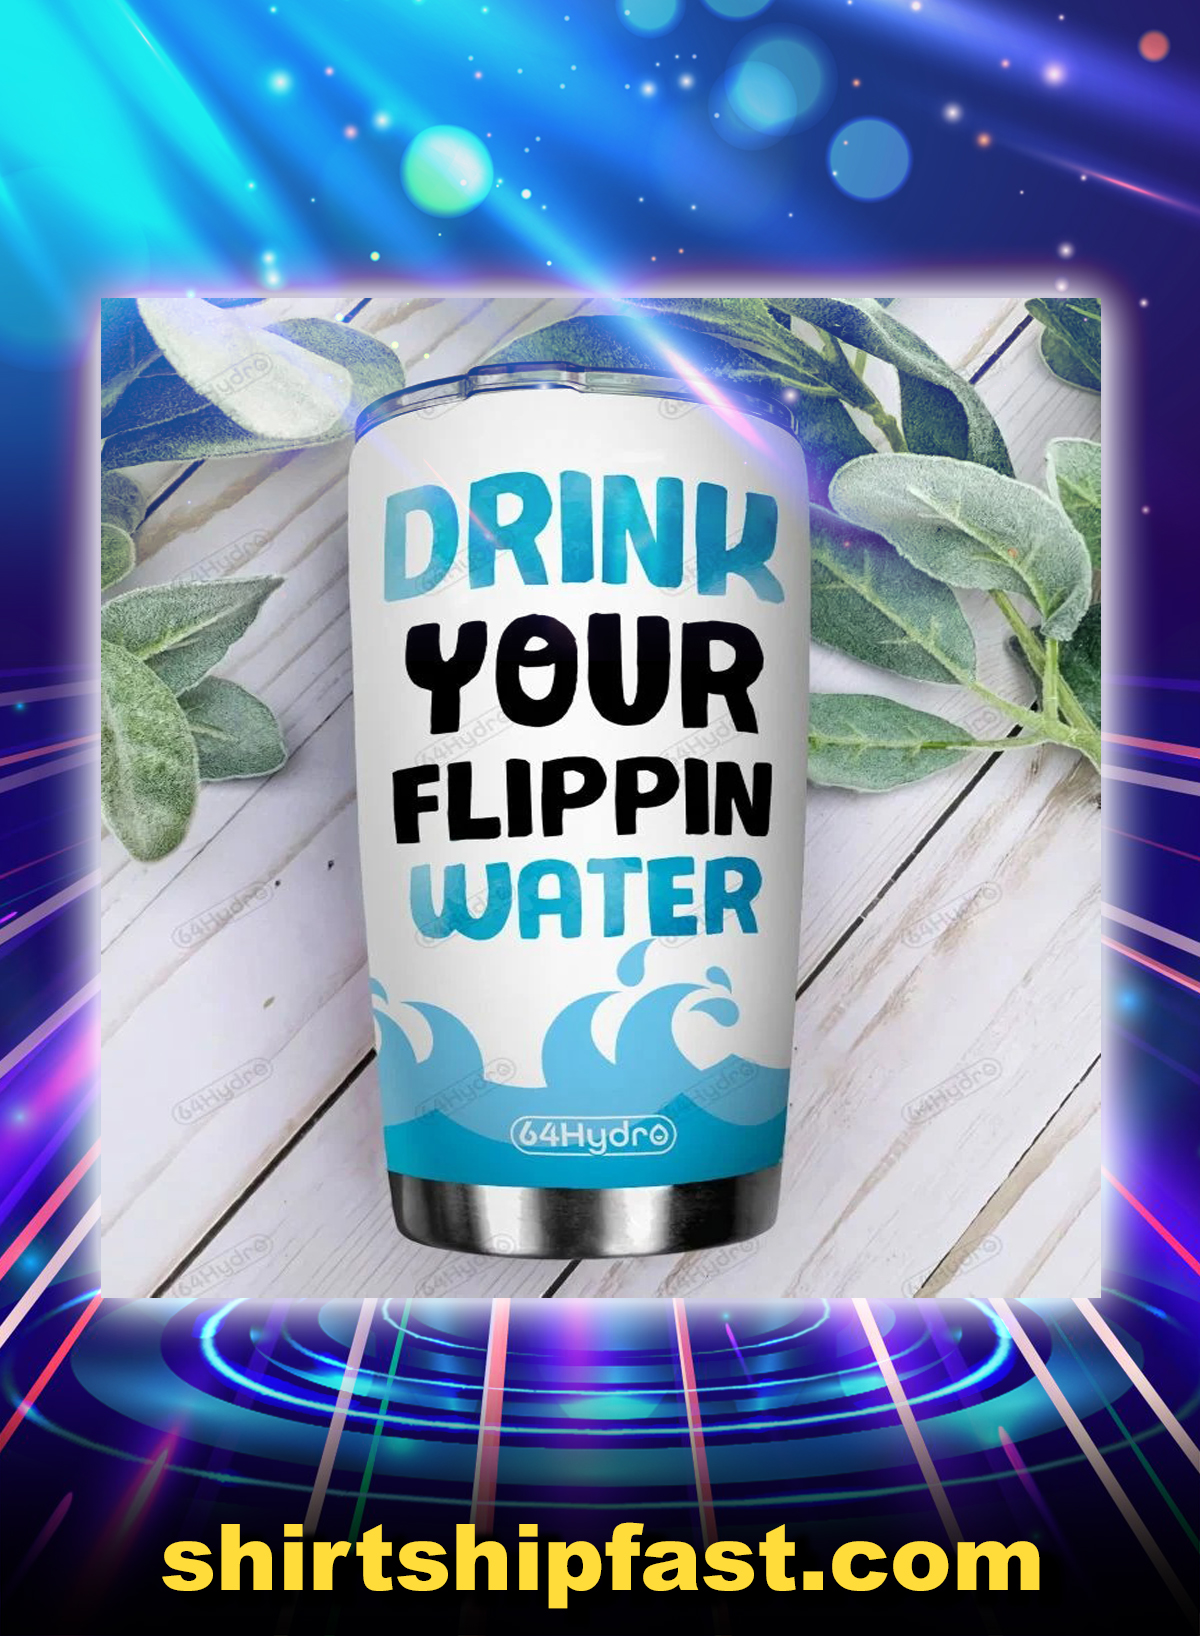 Dolphin drink your flippin water personalized custom name tumbler - Picture 1